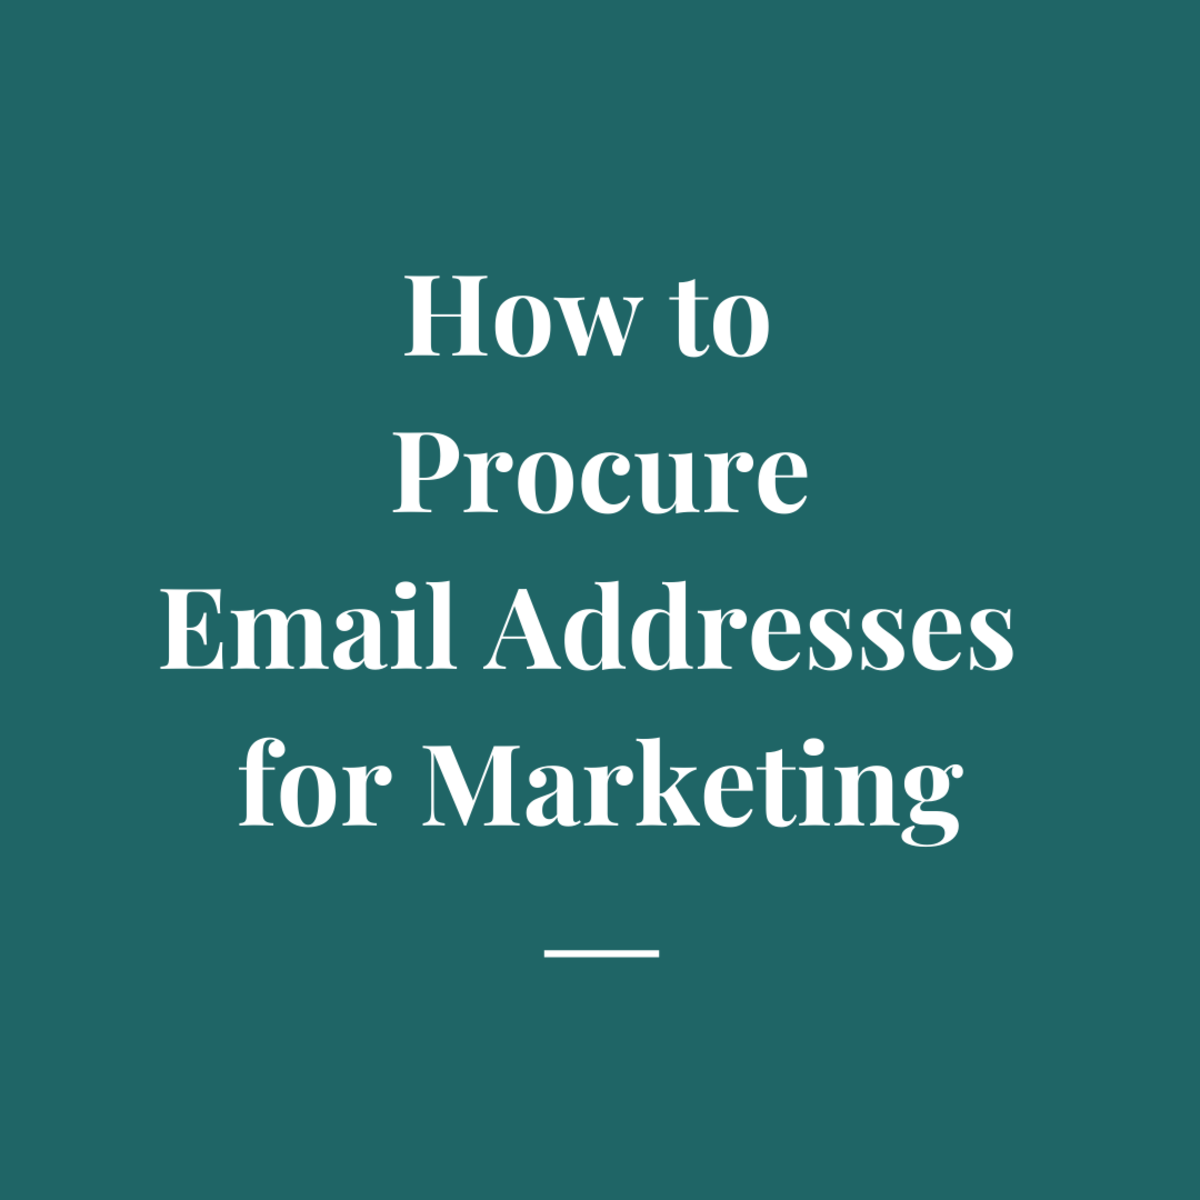 How to Procure Email Addresses for Marketing